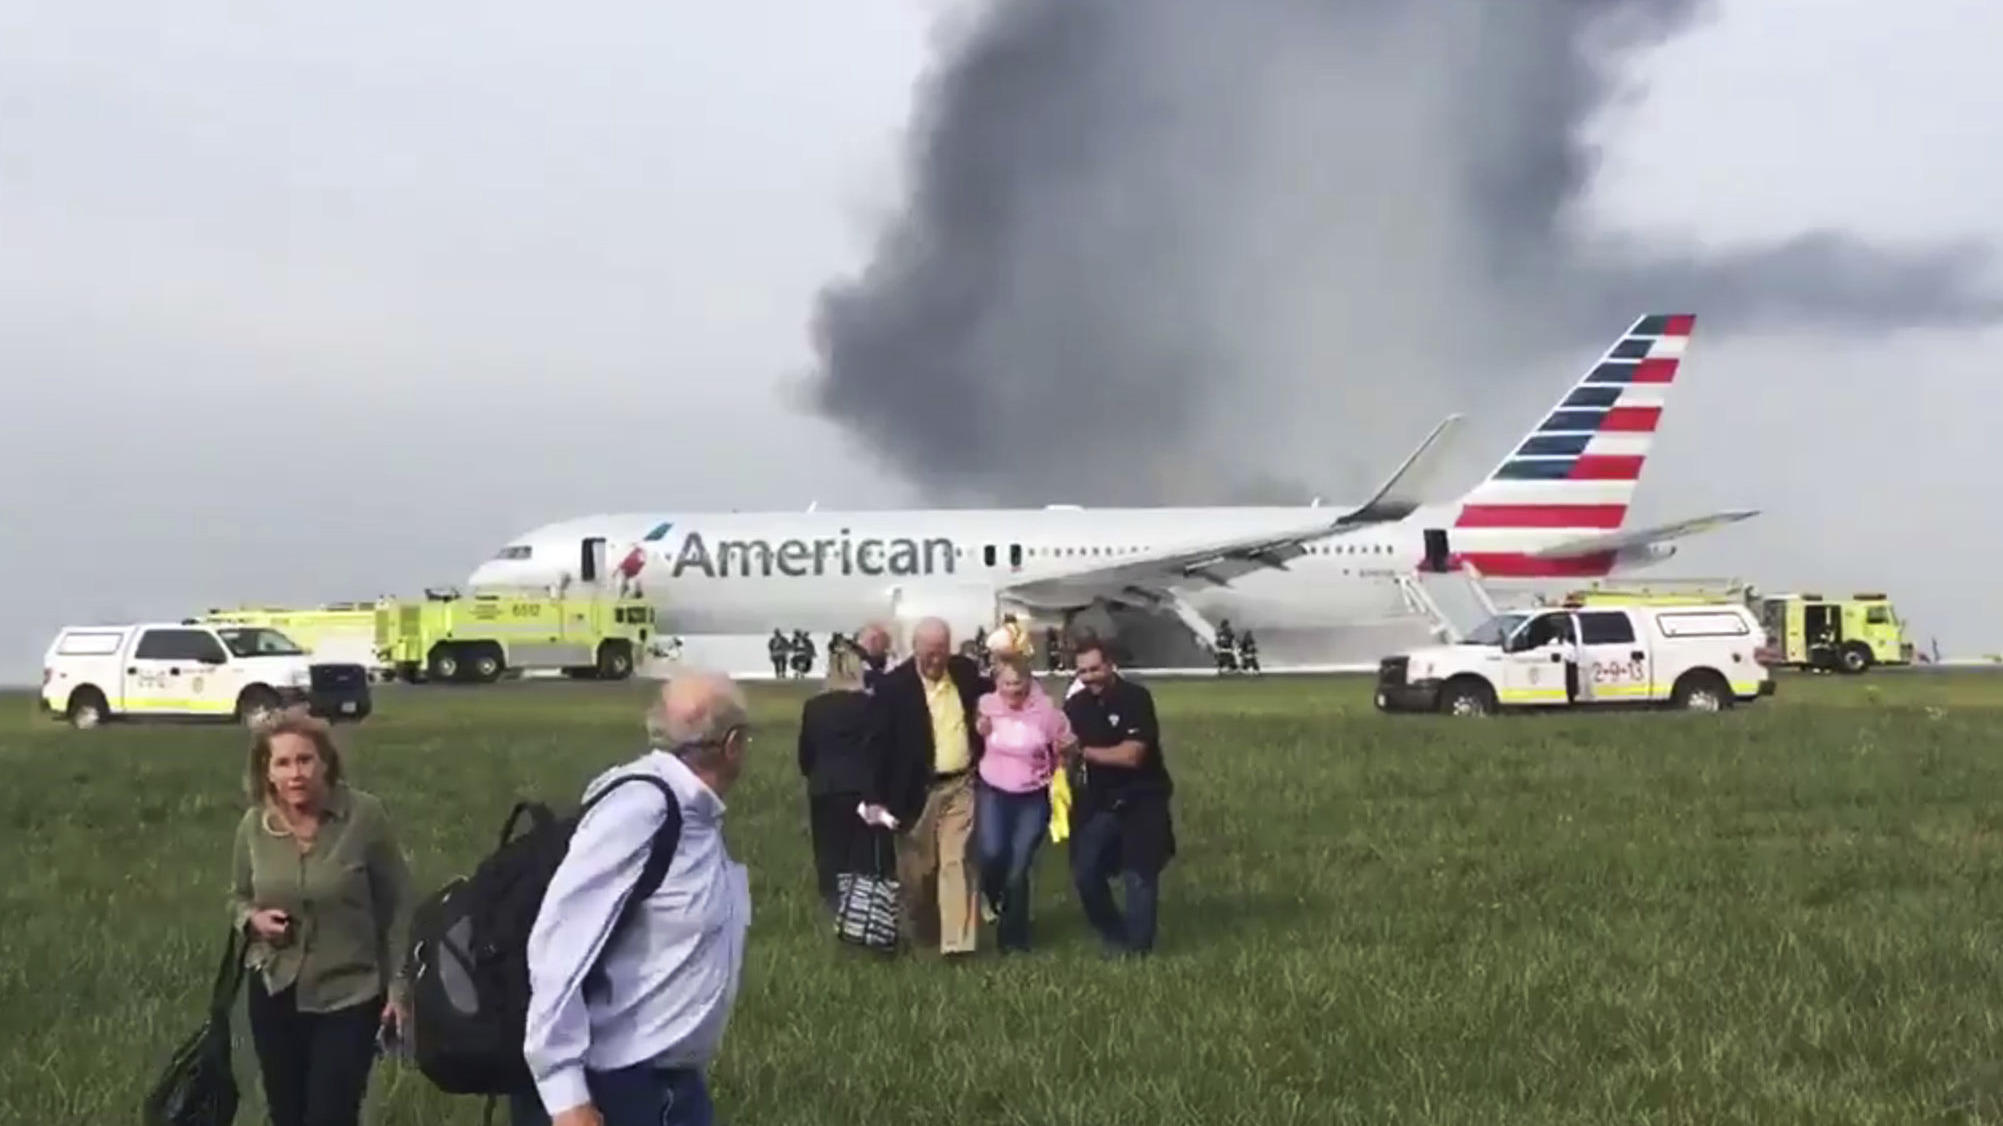 Two US planes suffer engine fires in separate incidents on same day